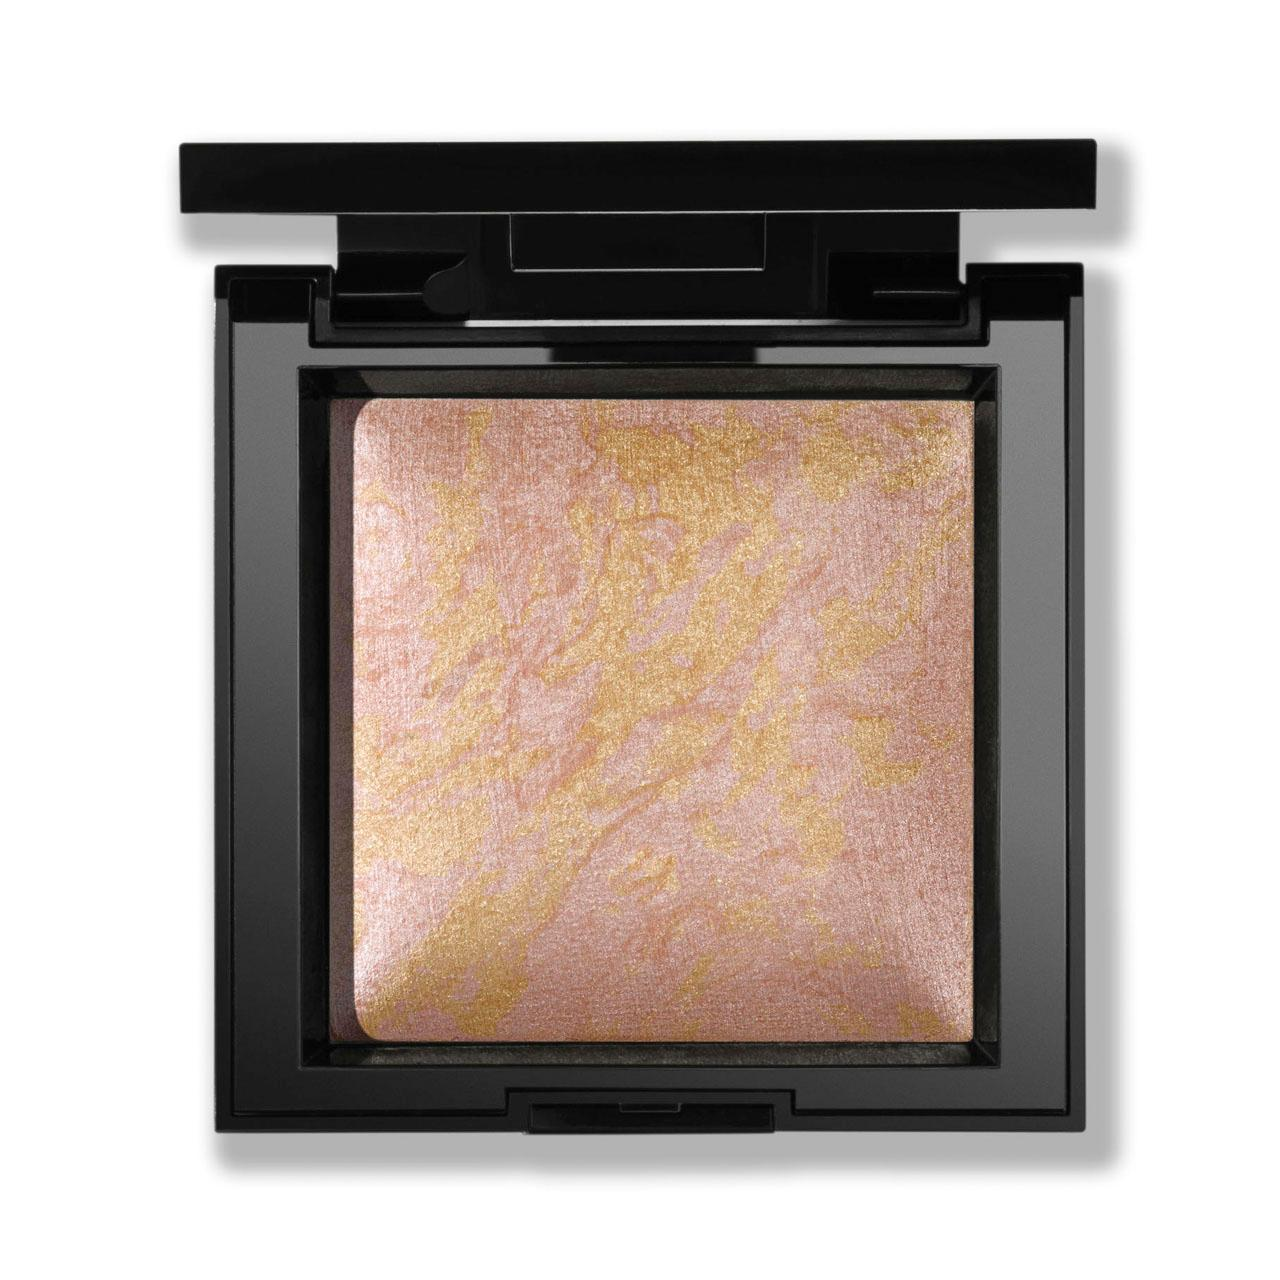 An image of bareMinerals Invisible Glow Medium